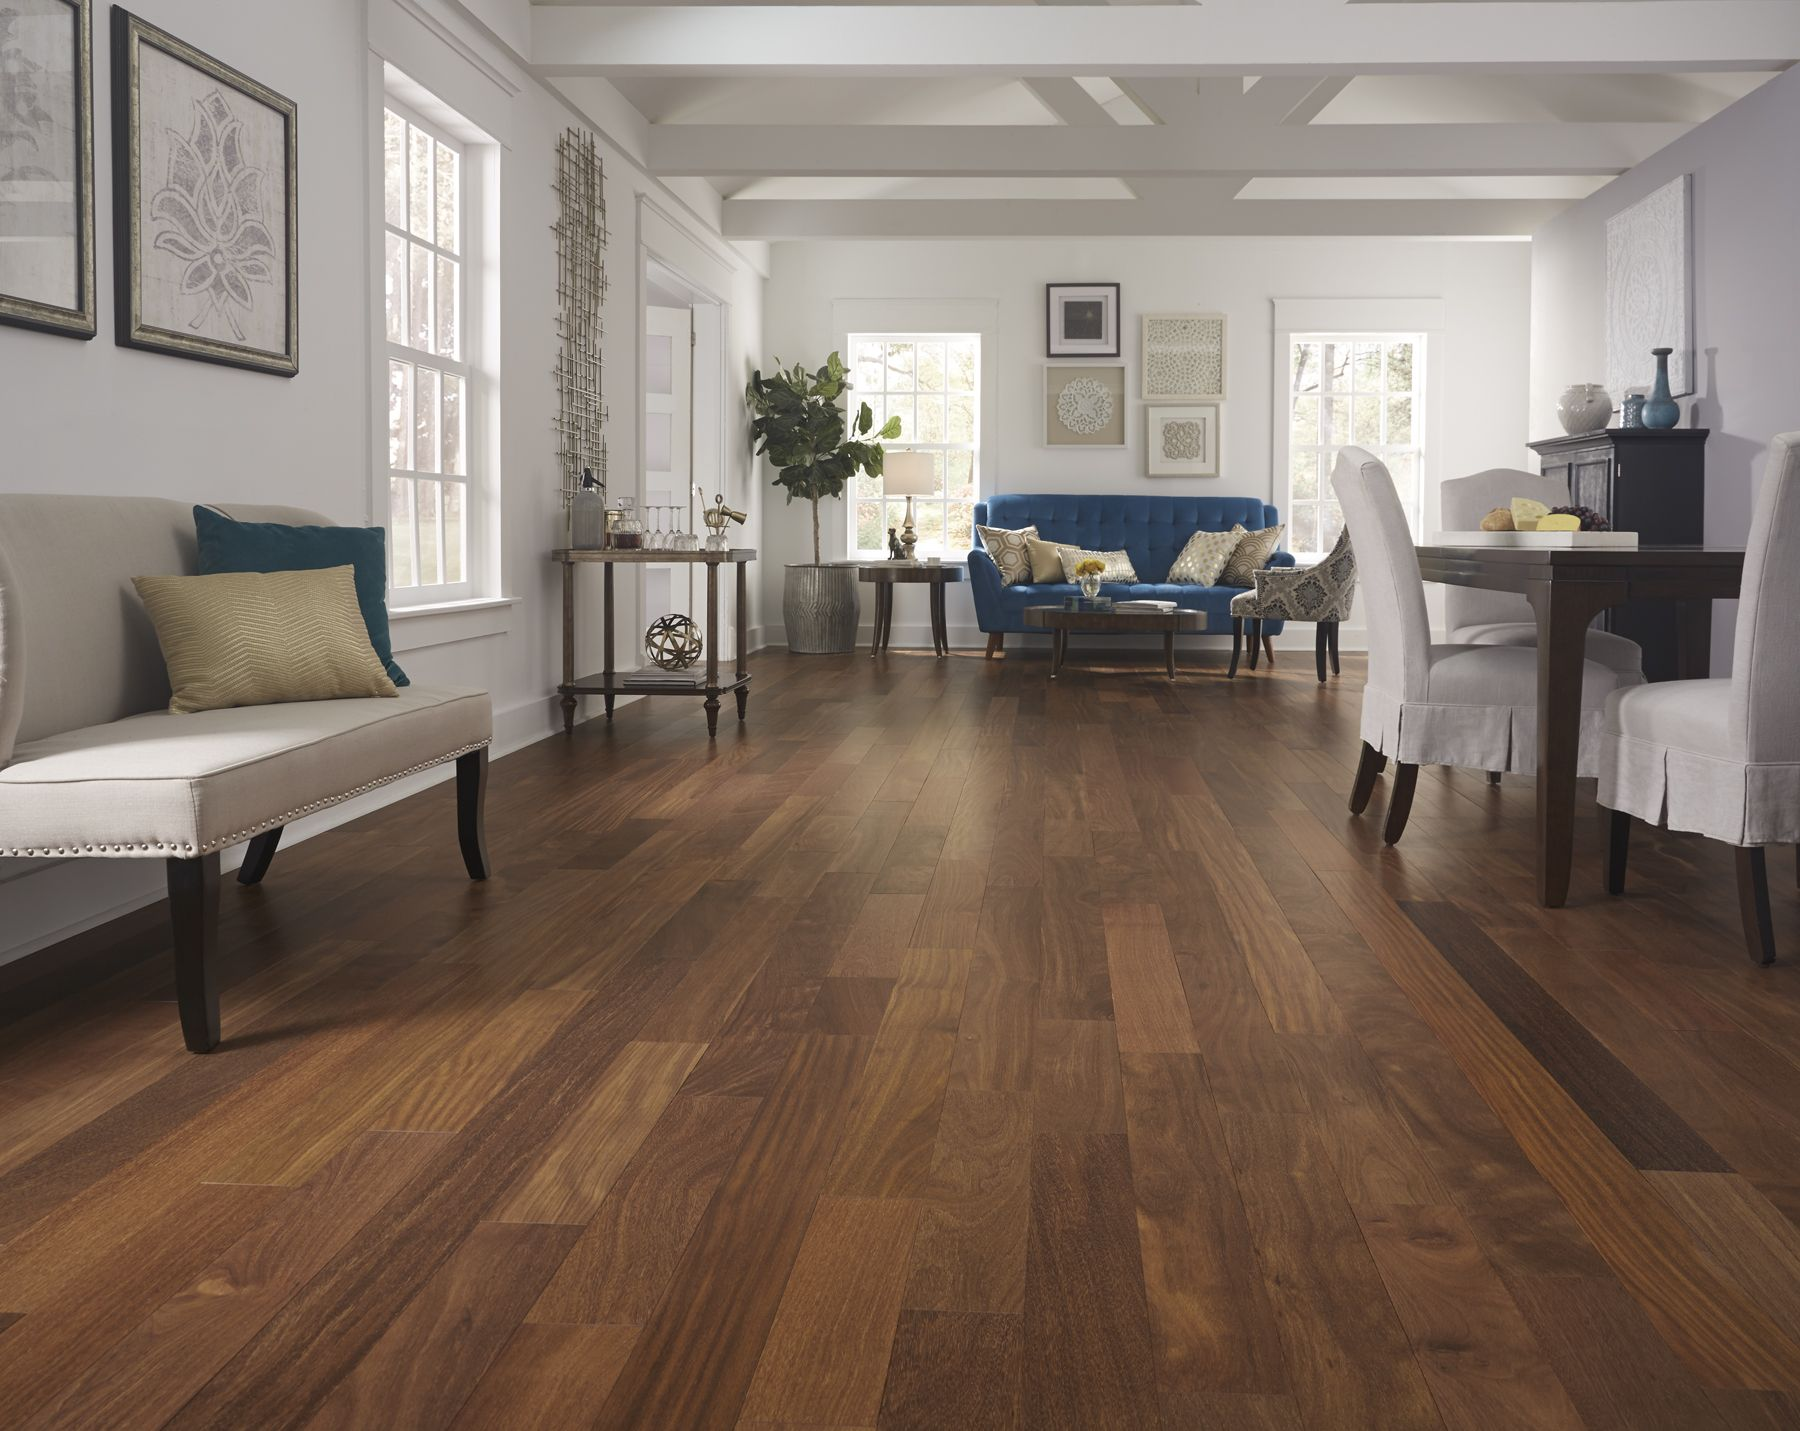 Bellawood 3 4 X 5 Matte Brazilian Chestnut Solid Hardwood Flooring Hardwood Flooring Prices Hardwood Floors Acacia Hardwood Flooring